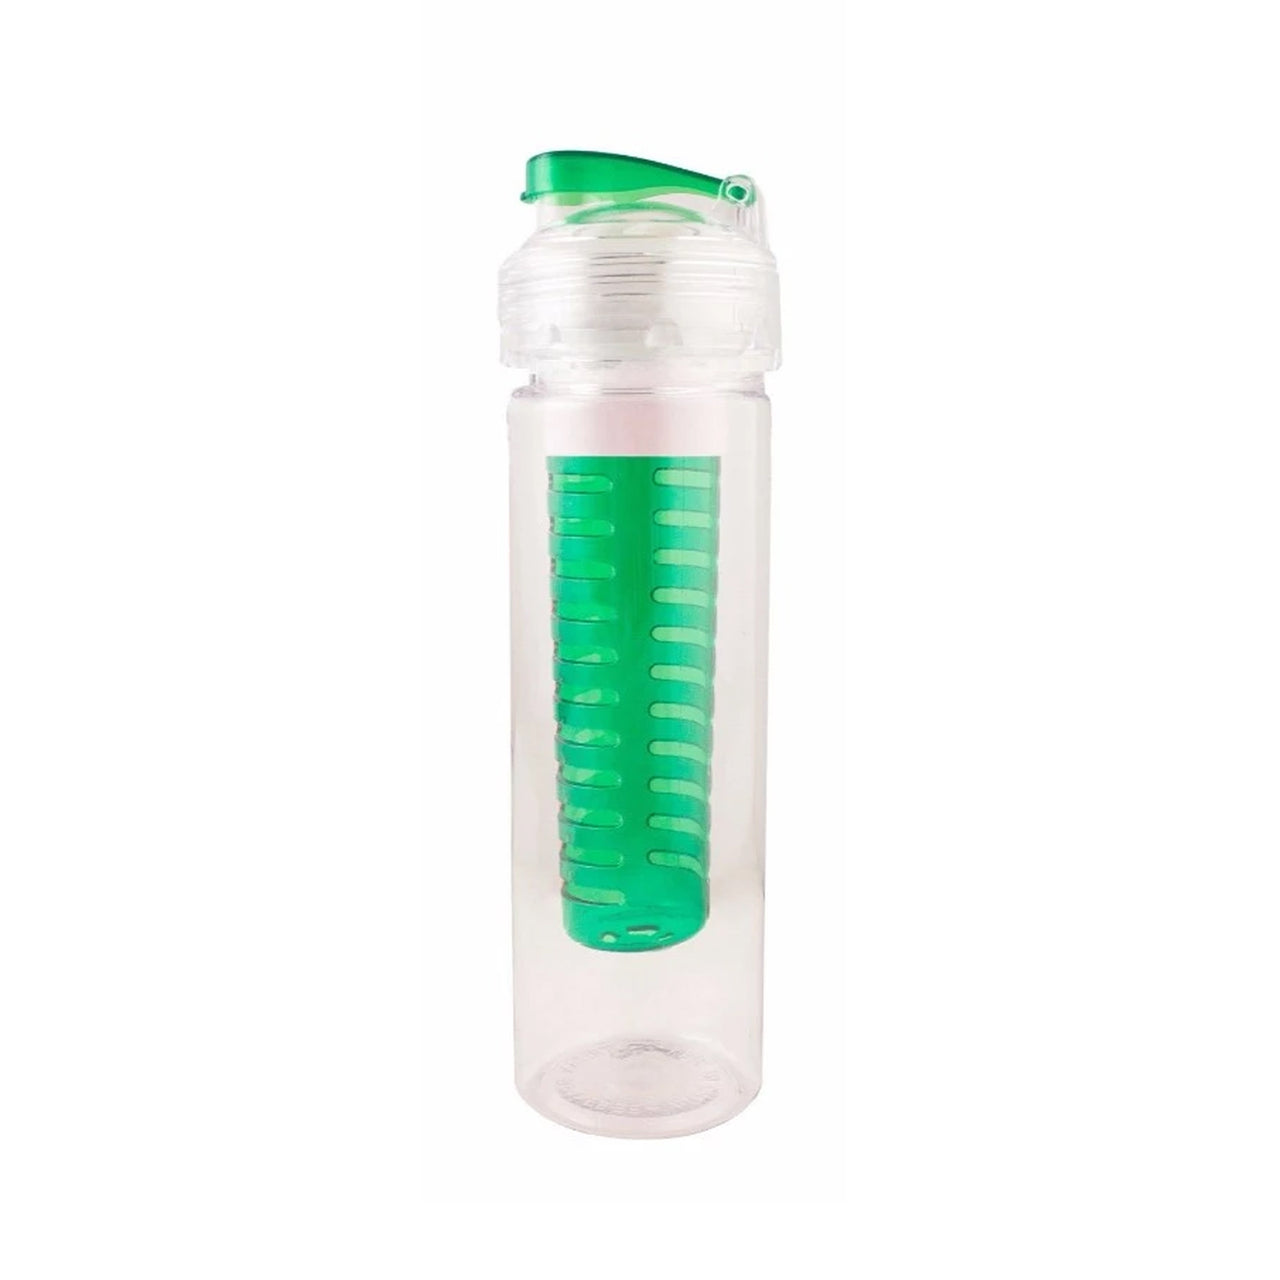 700ml Infuser Sipper Water Bottle - Green